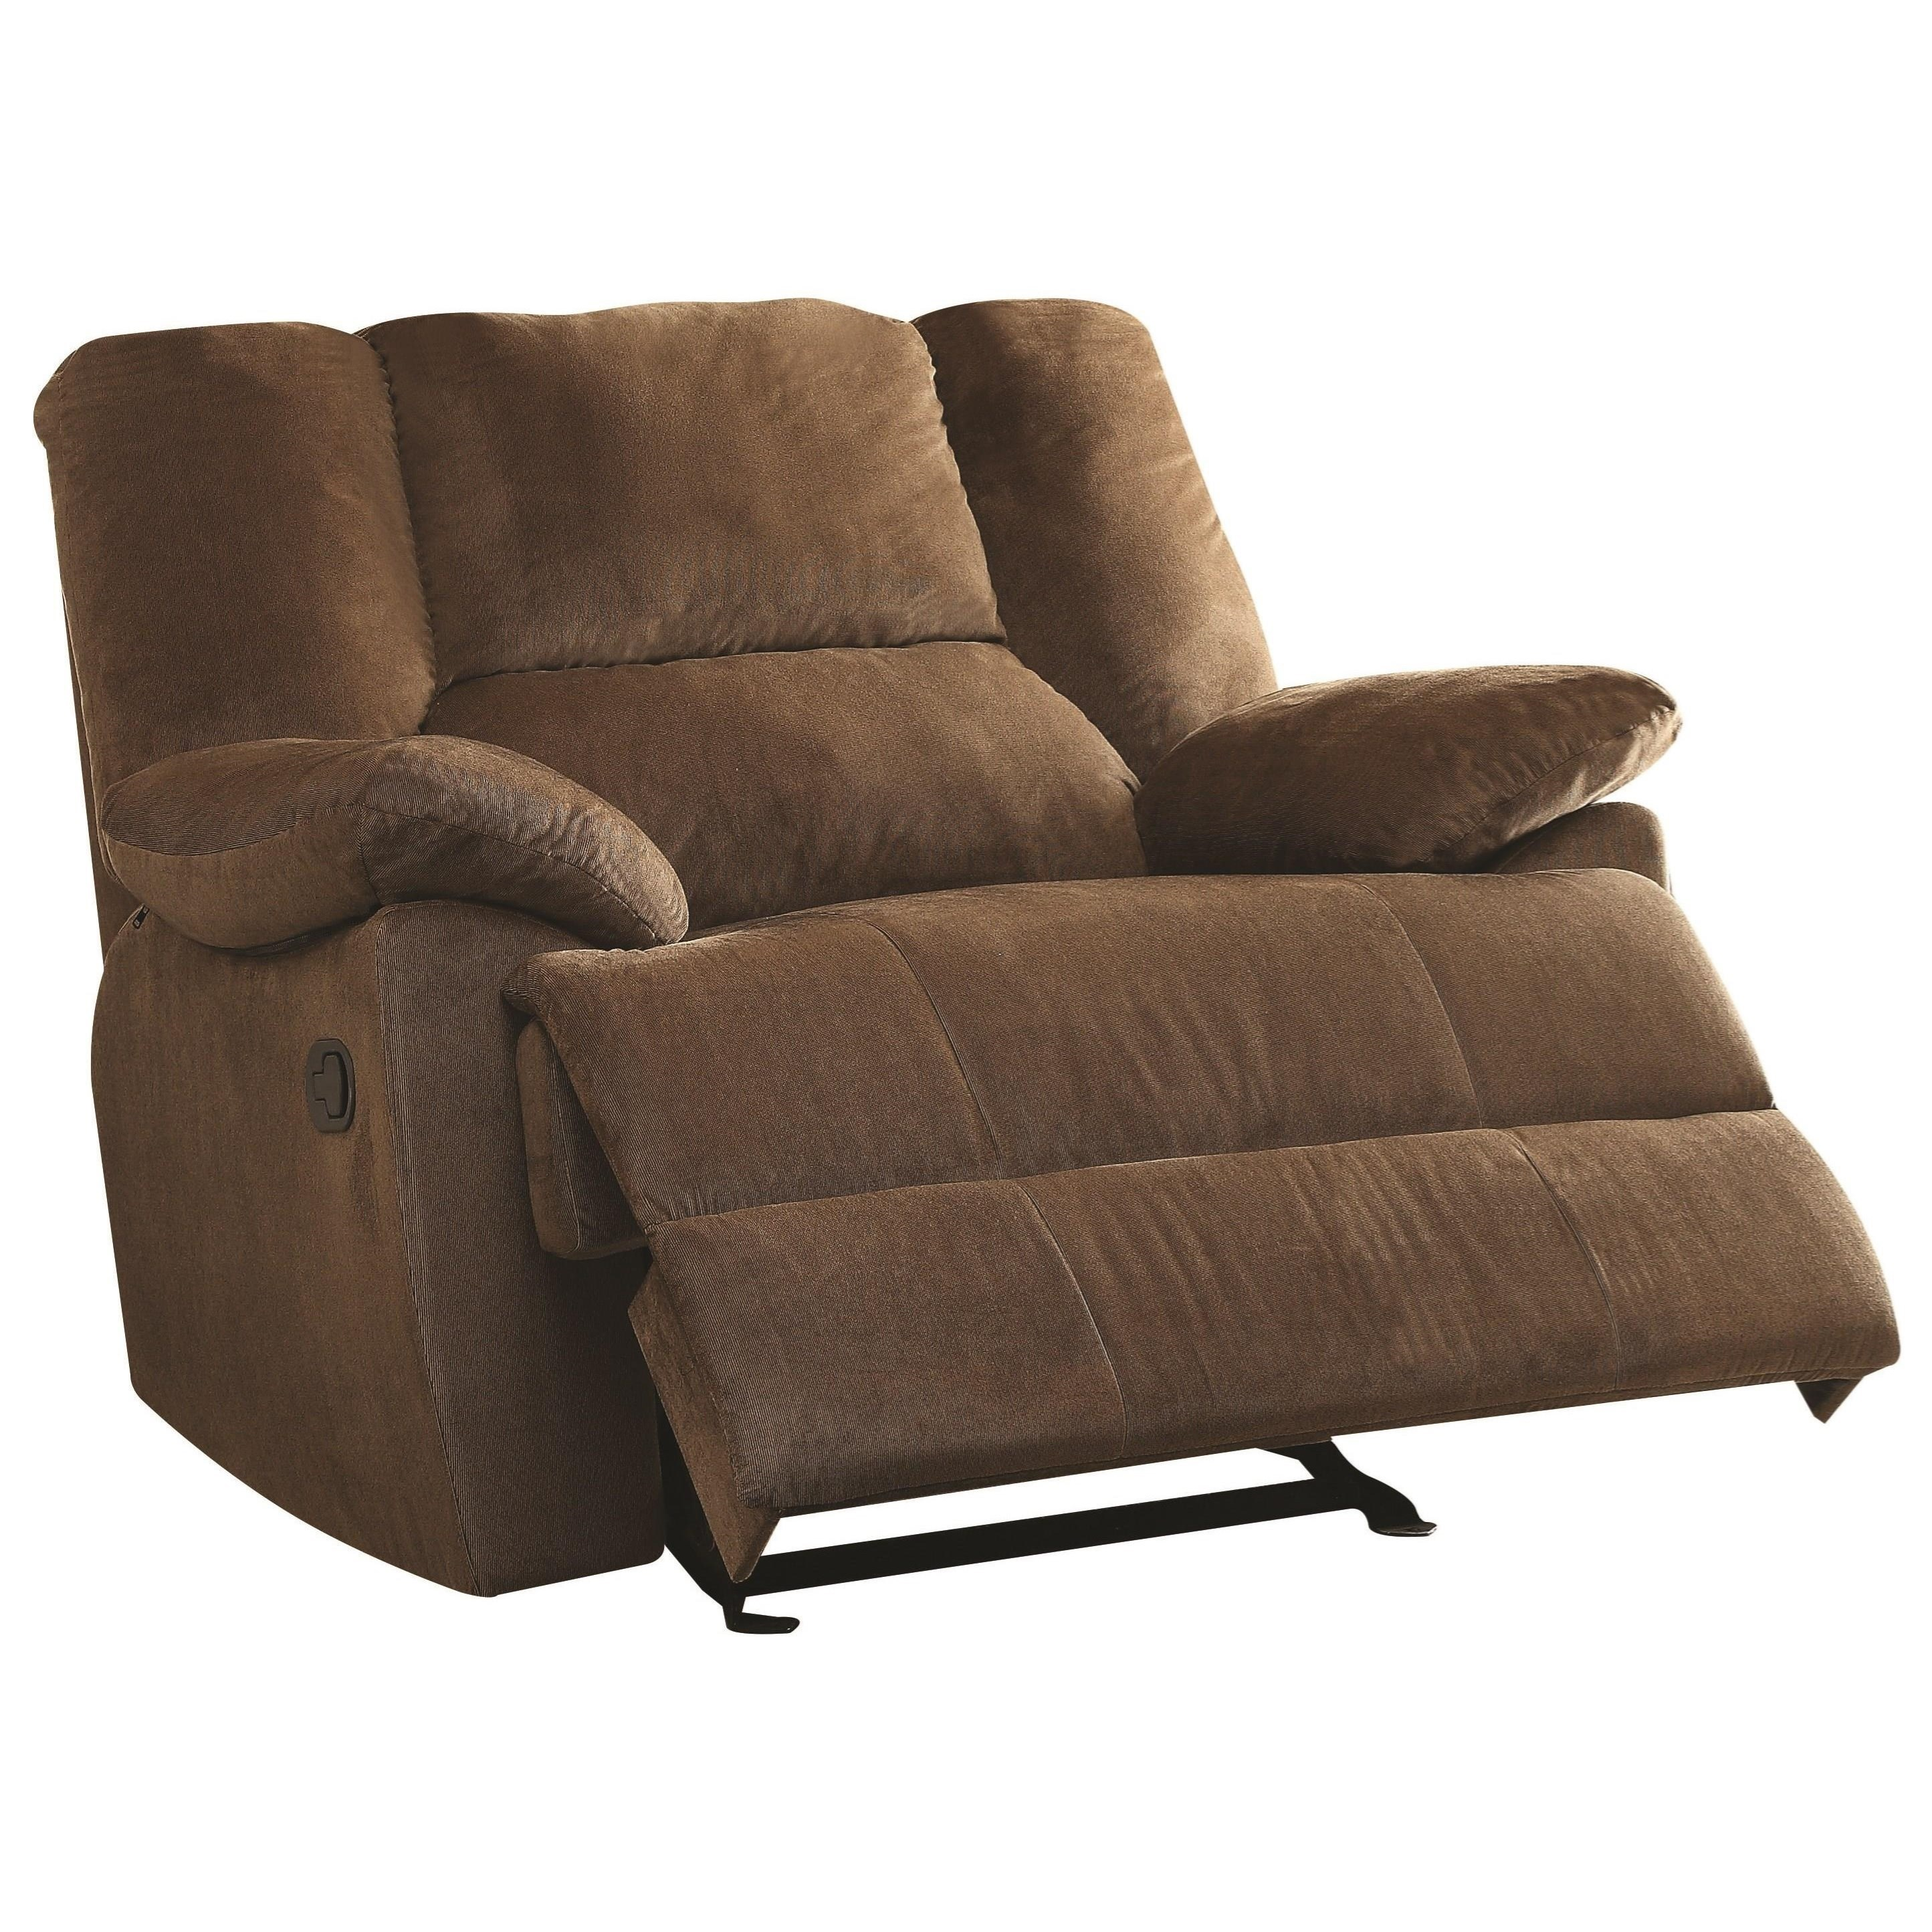 Oliver Oversized Glider Recliner (Motion) by Acme Furniture at A1 Furniture & Mattress